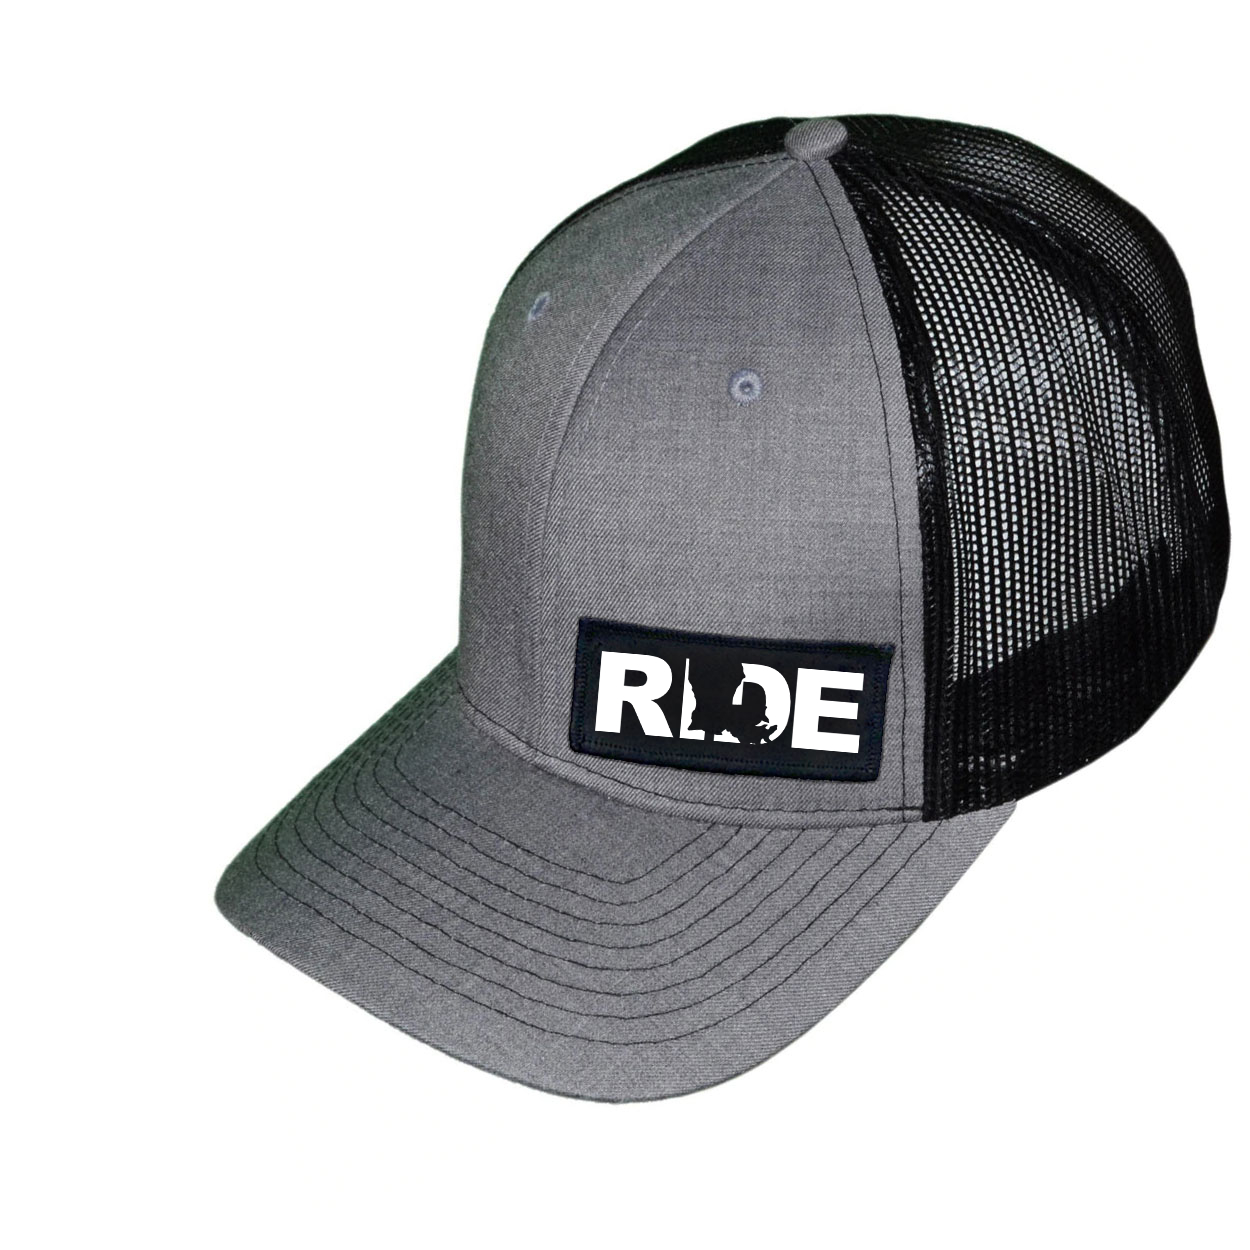 Ride Louisiana Night Out Woven Patch Snapback Trucker Hat Heather Gray/Black (White Logo)